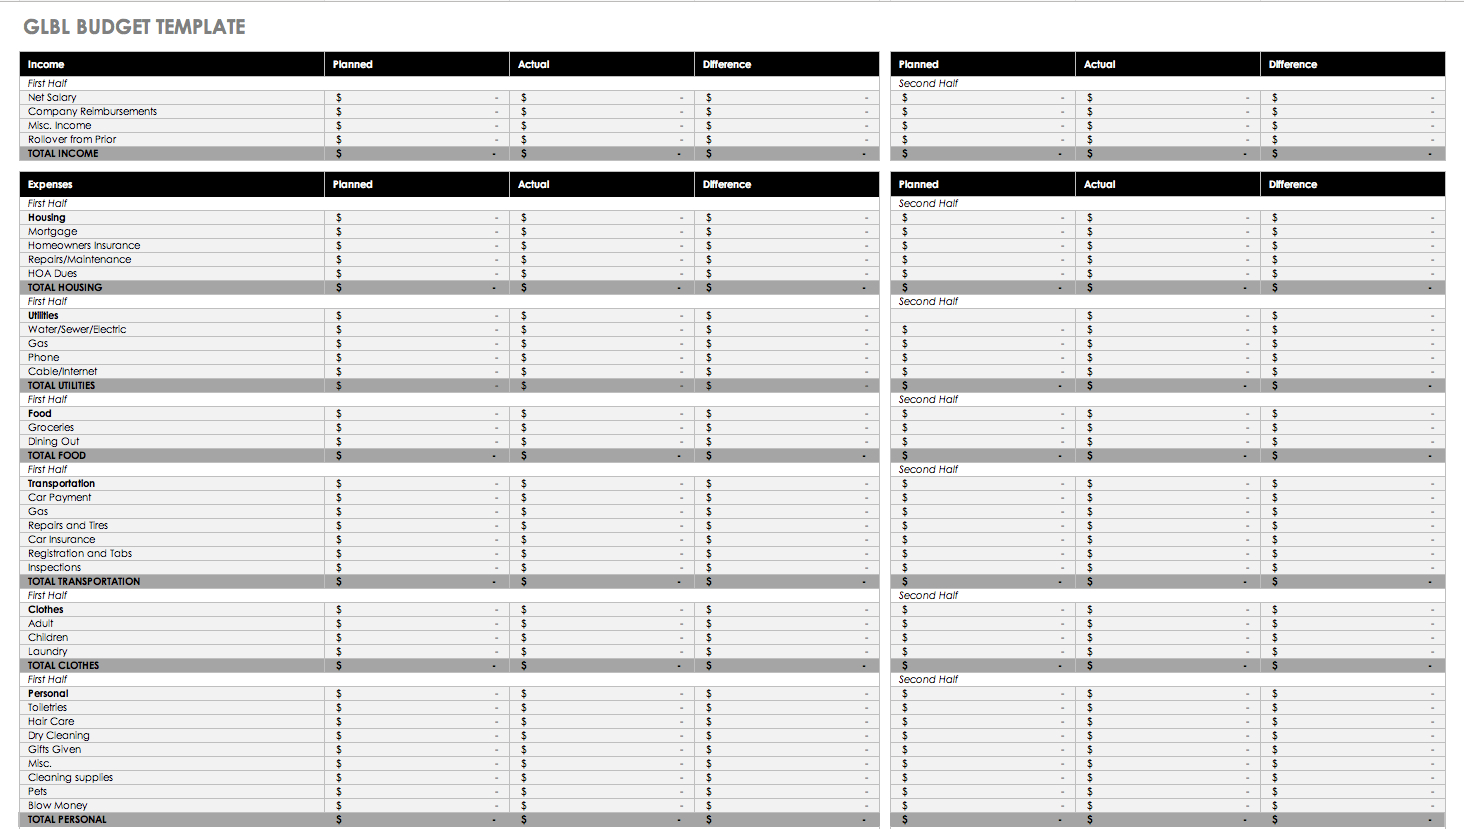 Budget Spreadsheet For Couples Inside Free Budget Templates In Excel For Any Use